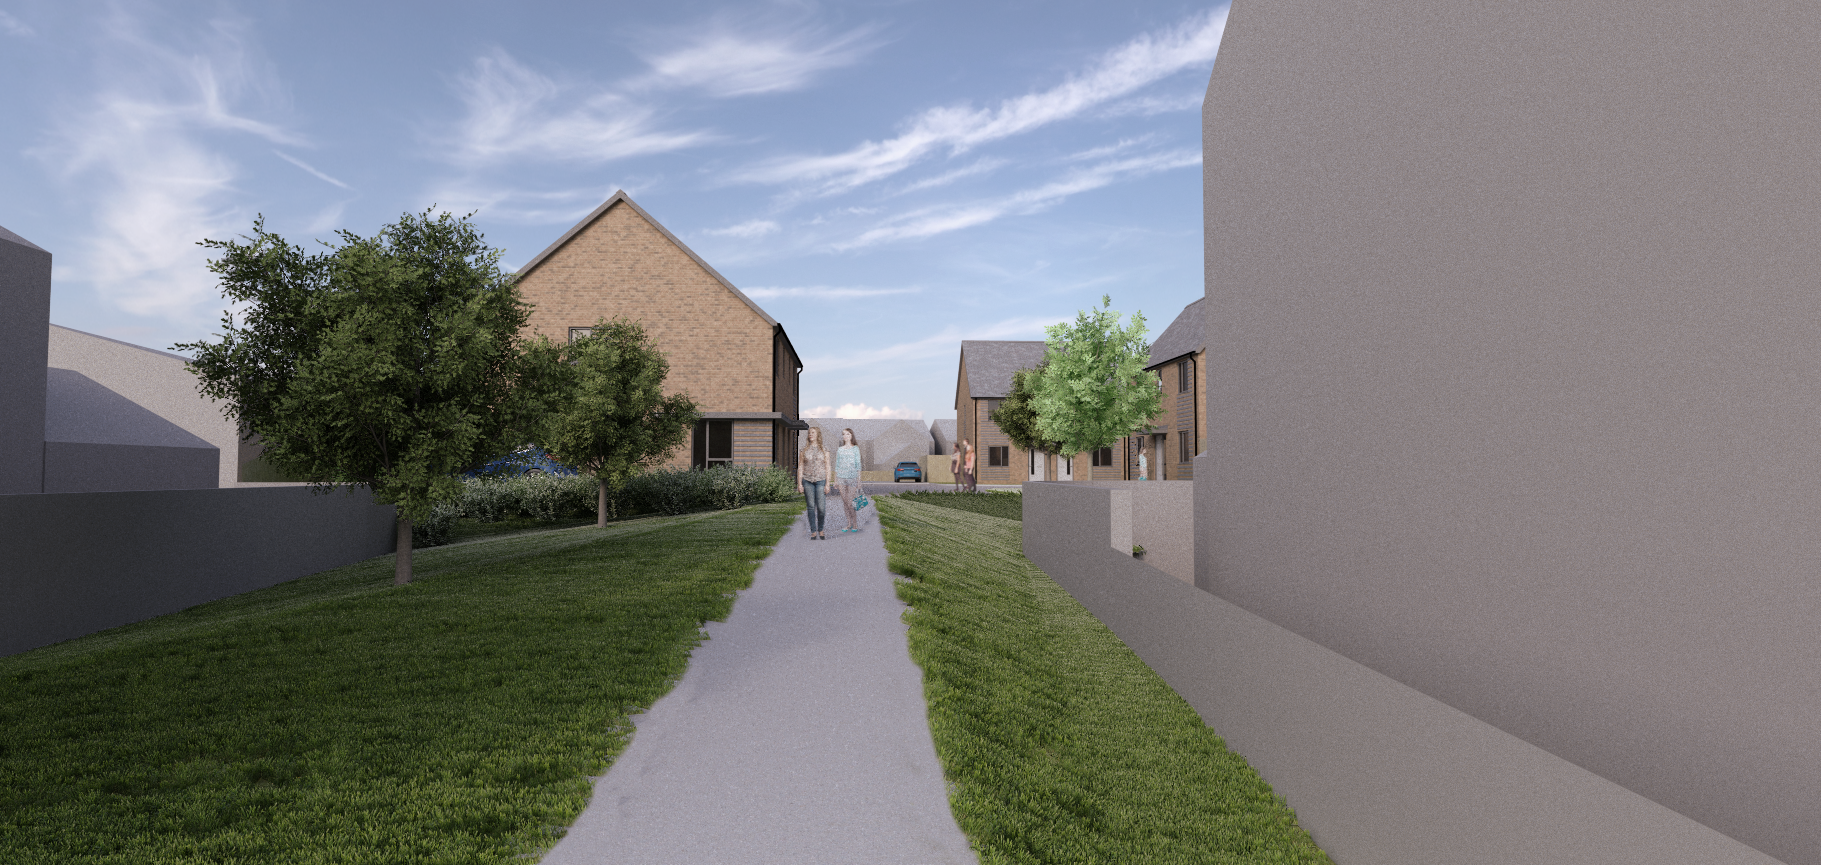 Mock up image of planned development. People walking on a footpath and homes in the background.